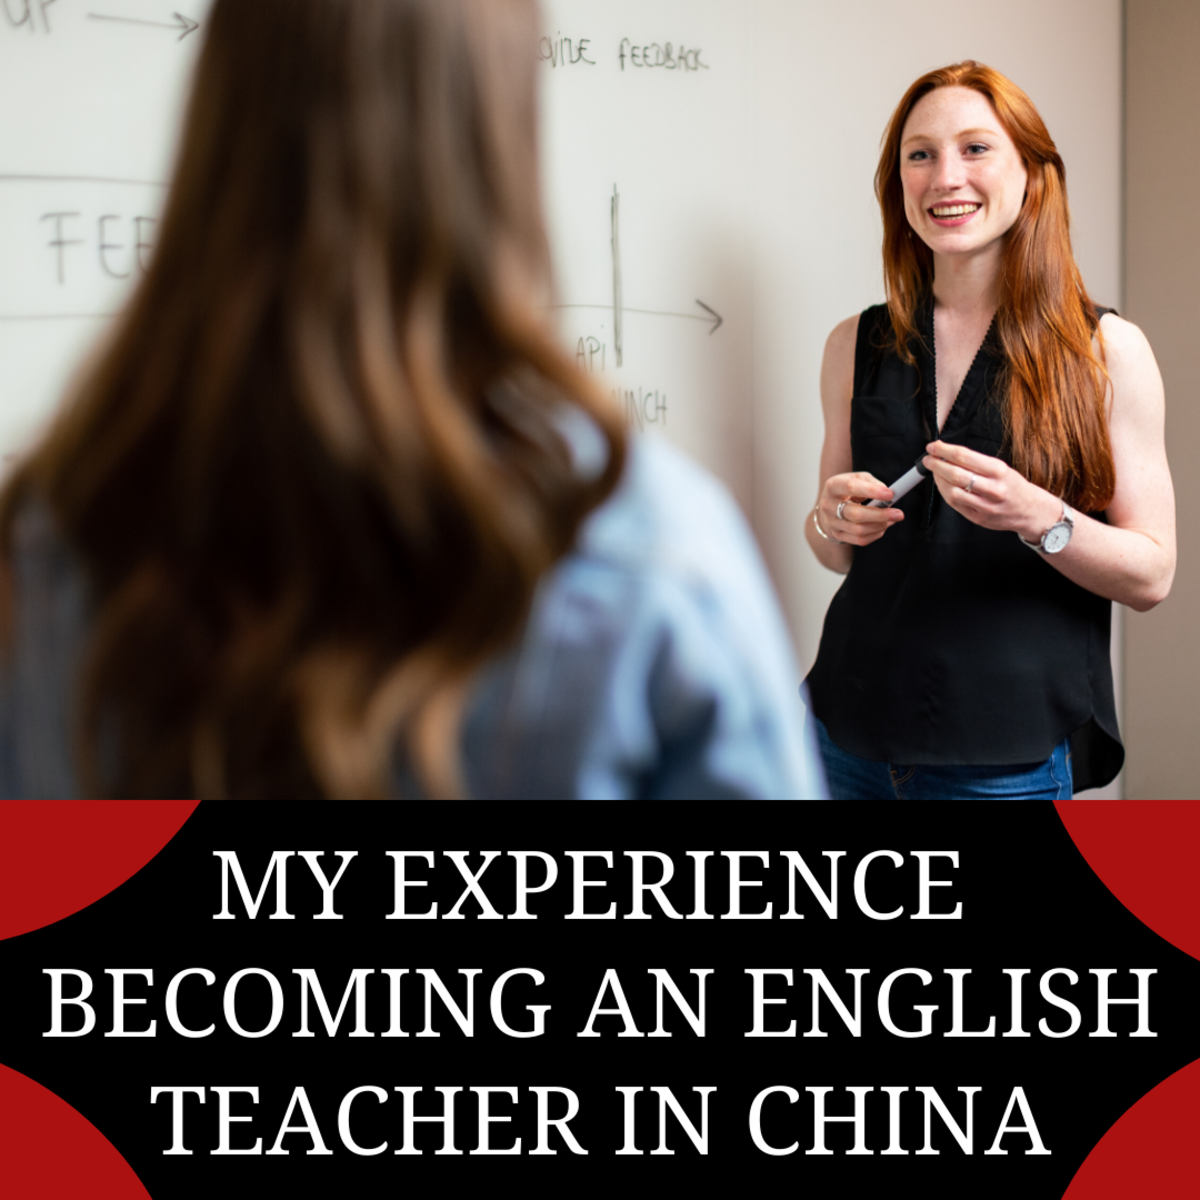 Read on to learn about my experience looking for and applying for jobs and moving to China.